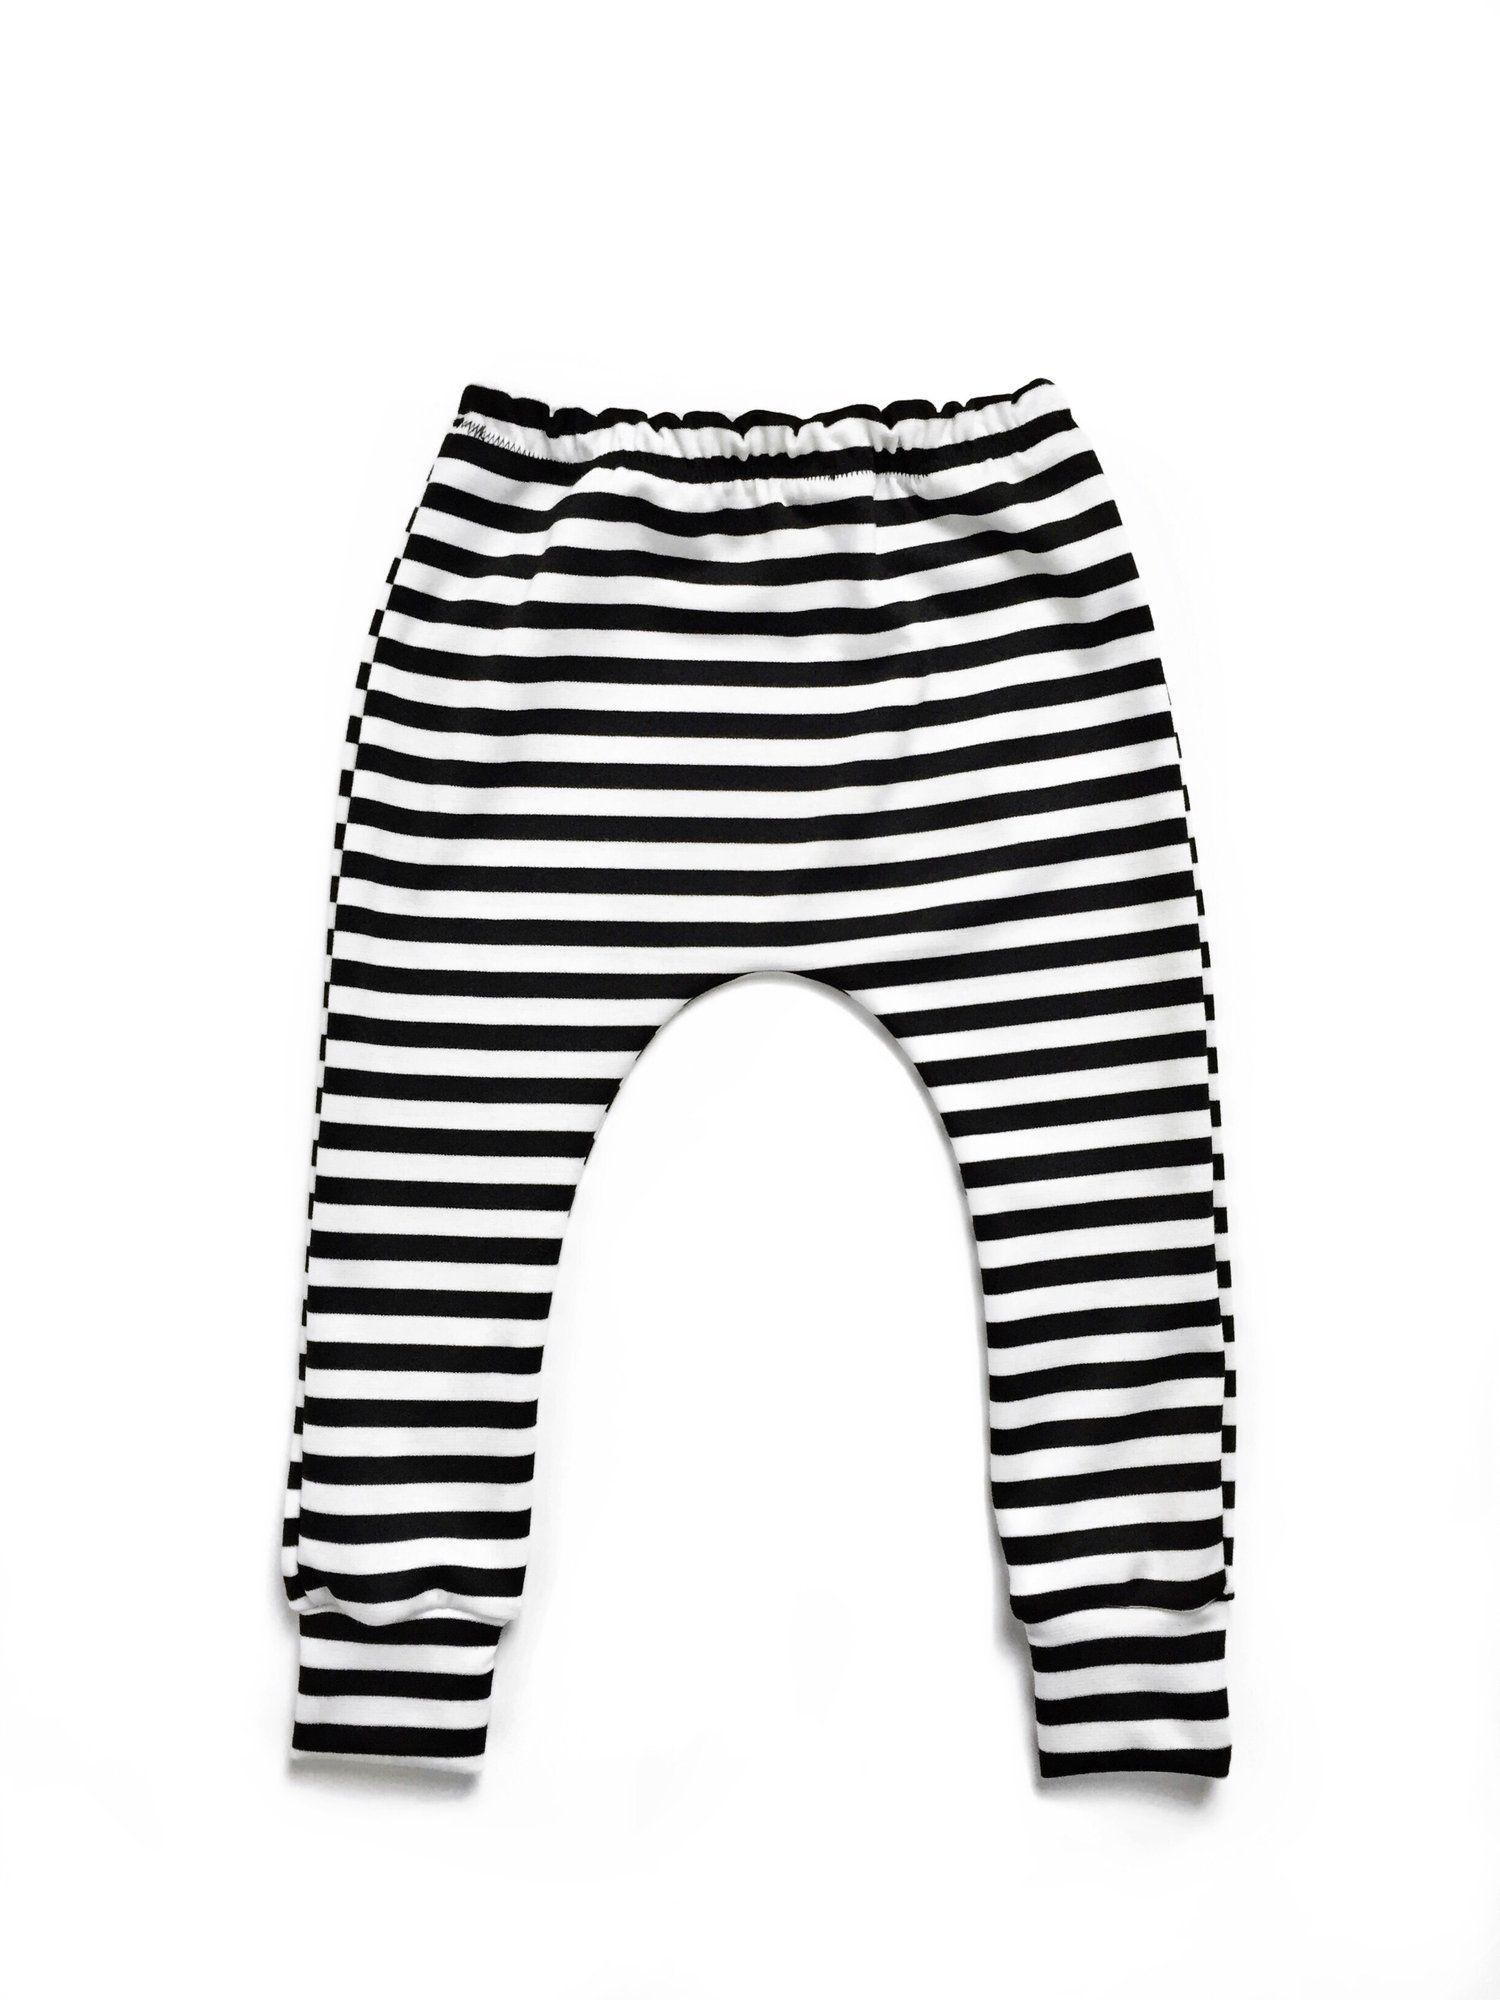 Cheeky Face Apparel    Black and White Stripes CHEEKY ...